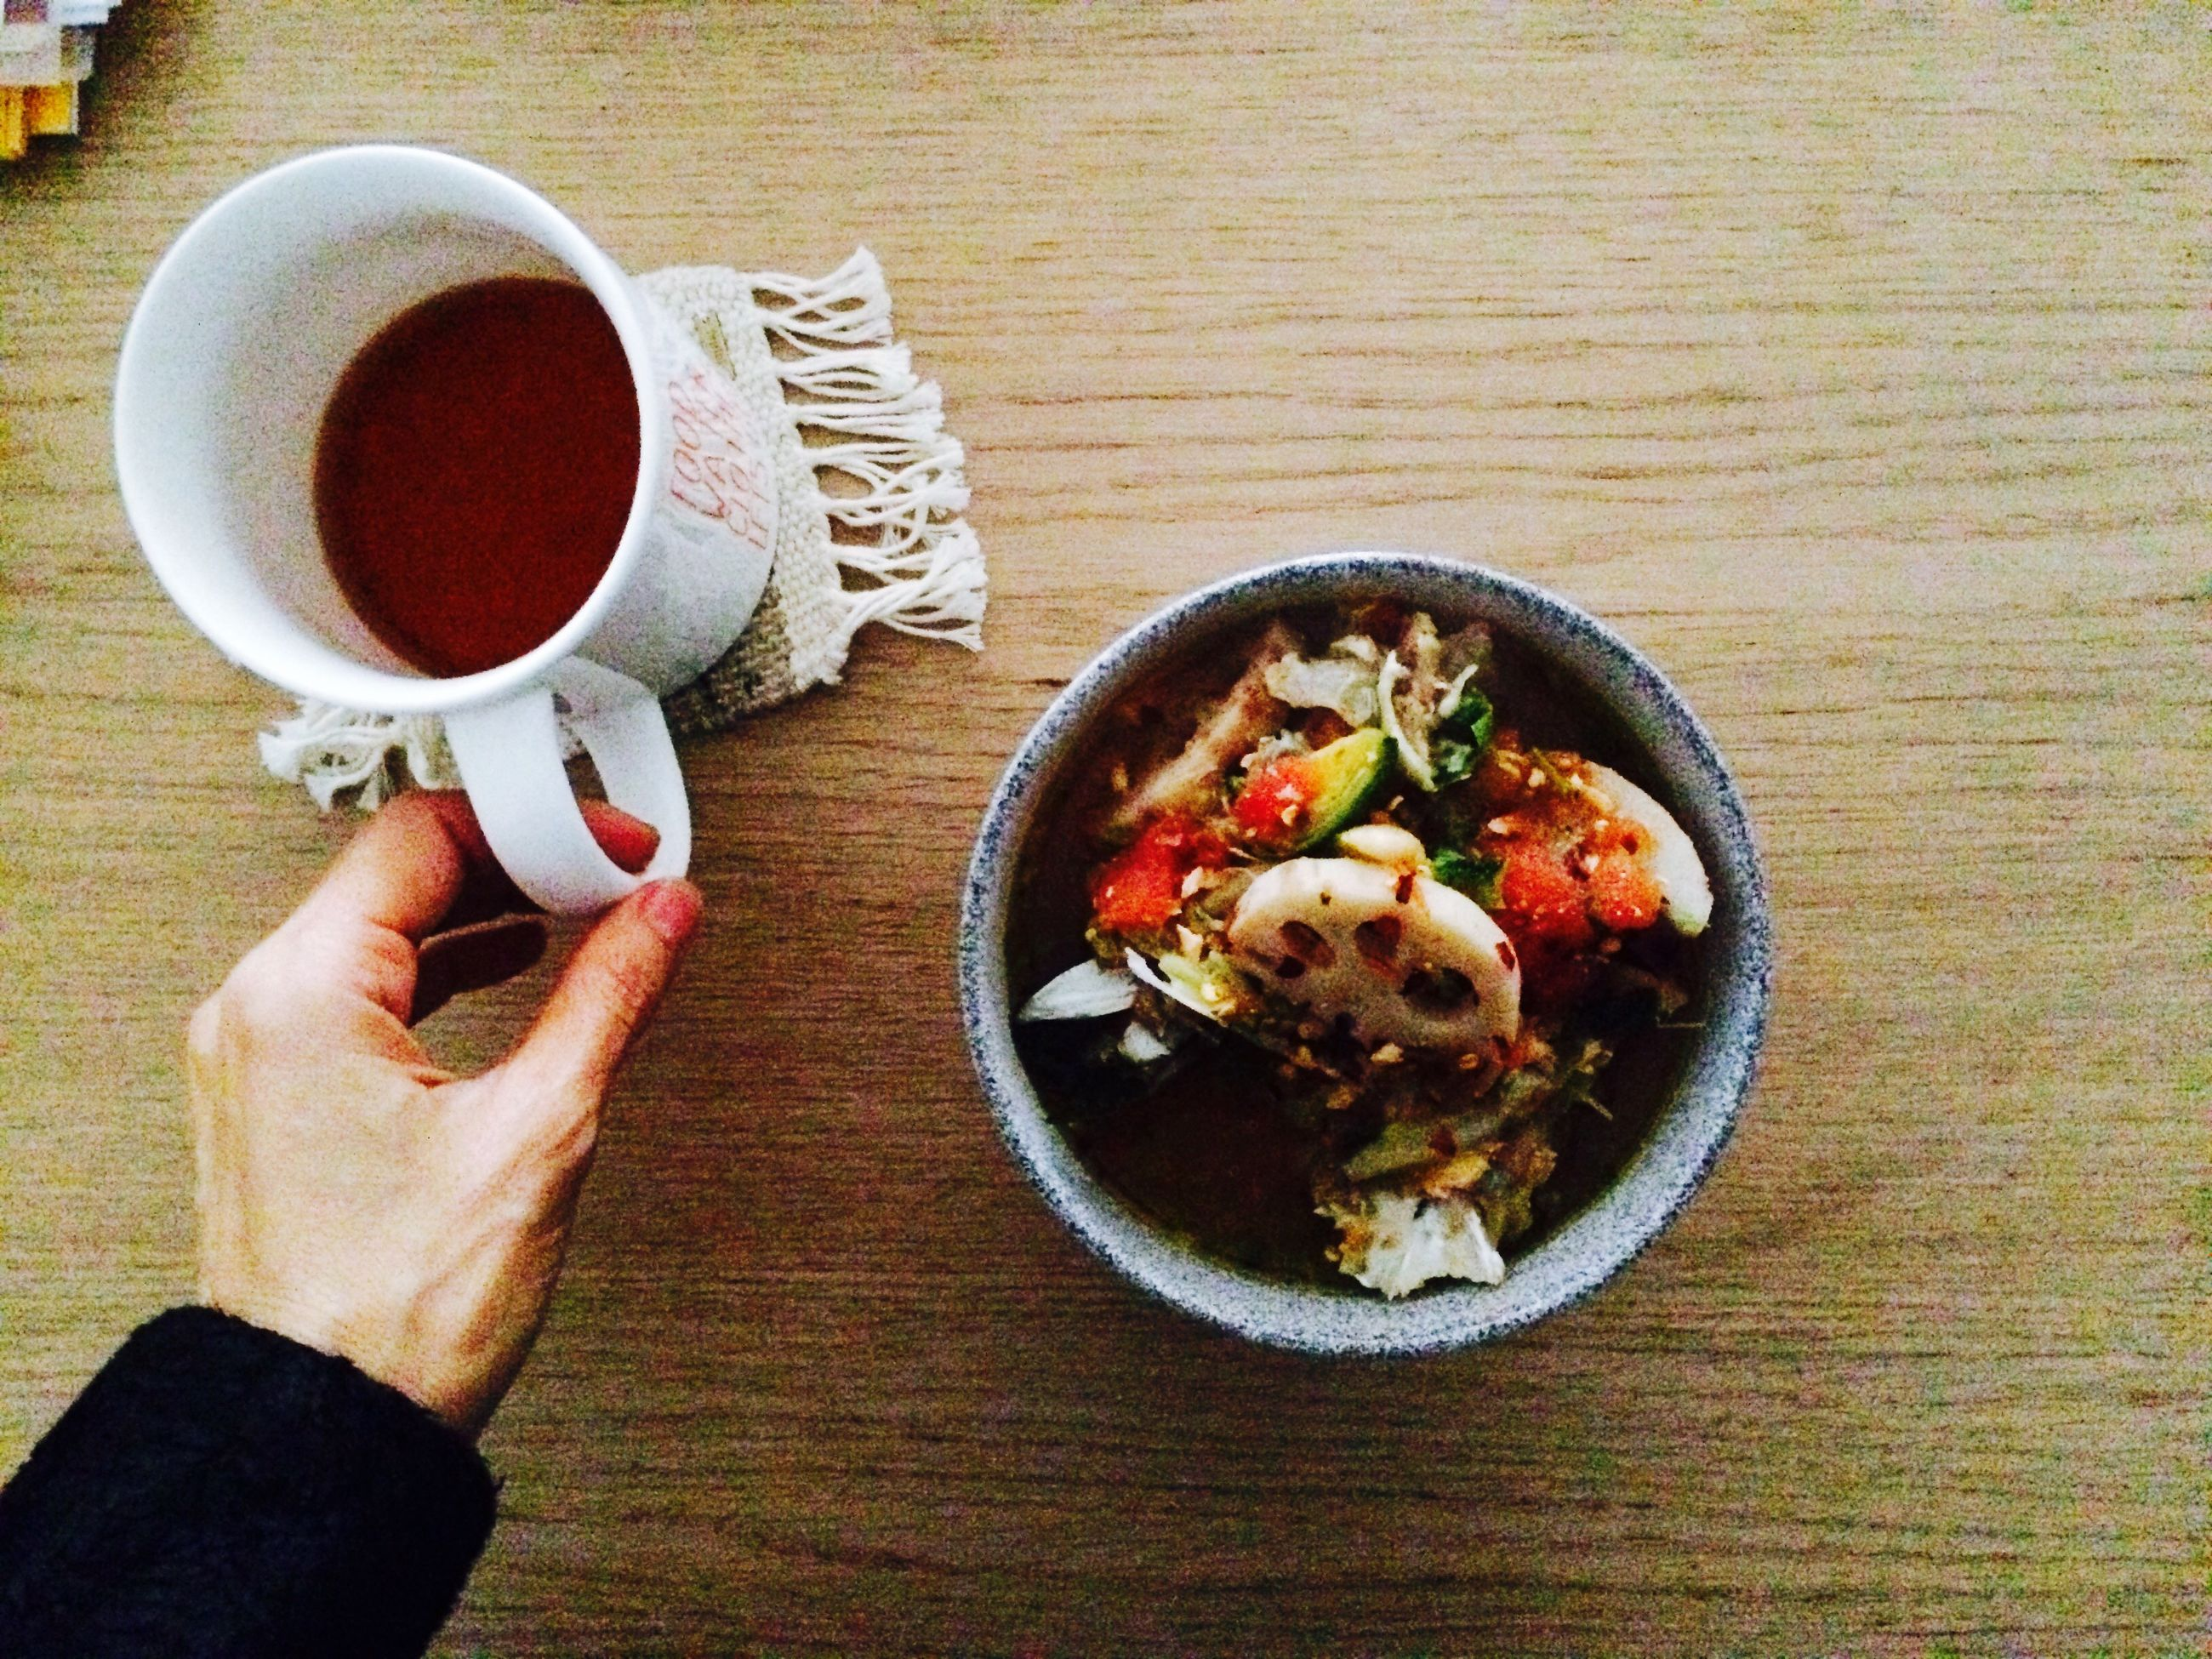 food and drink, food, freshness, person, table, indoors, holding, drink, healthy eating, plate, ready-to-eat, part of, refreshment, coffee cup, high angle view, cropped, personal perspective